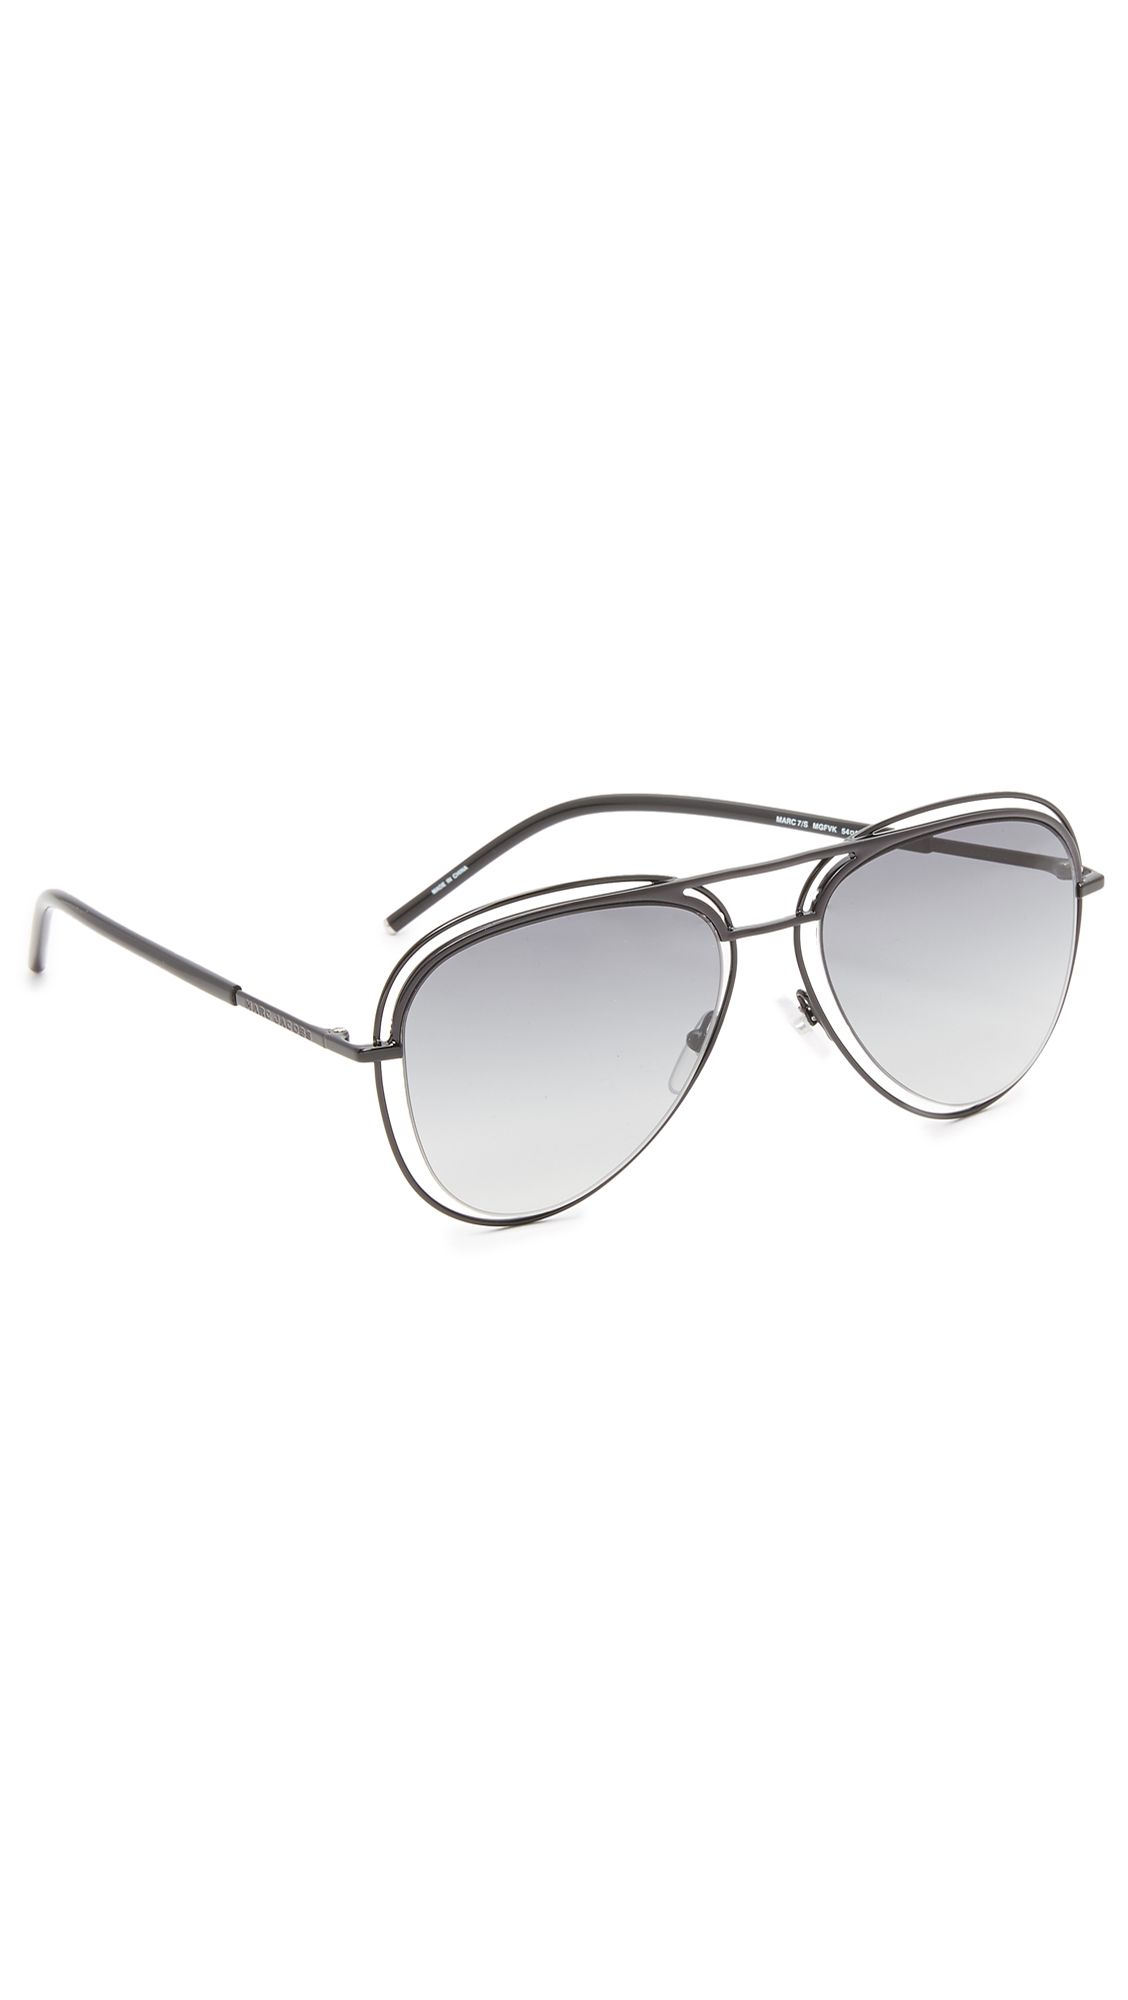 d2d93184c8d MARC JACOBS Double Frame Aviator Sunglasses.  marcjacobs  sunglasses ...